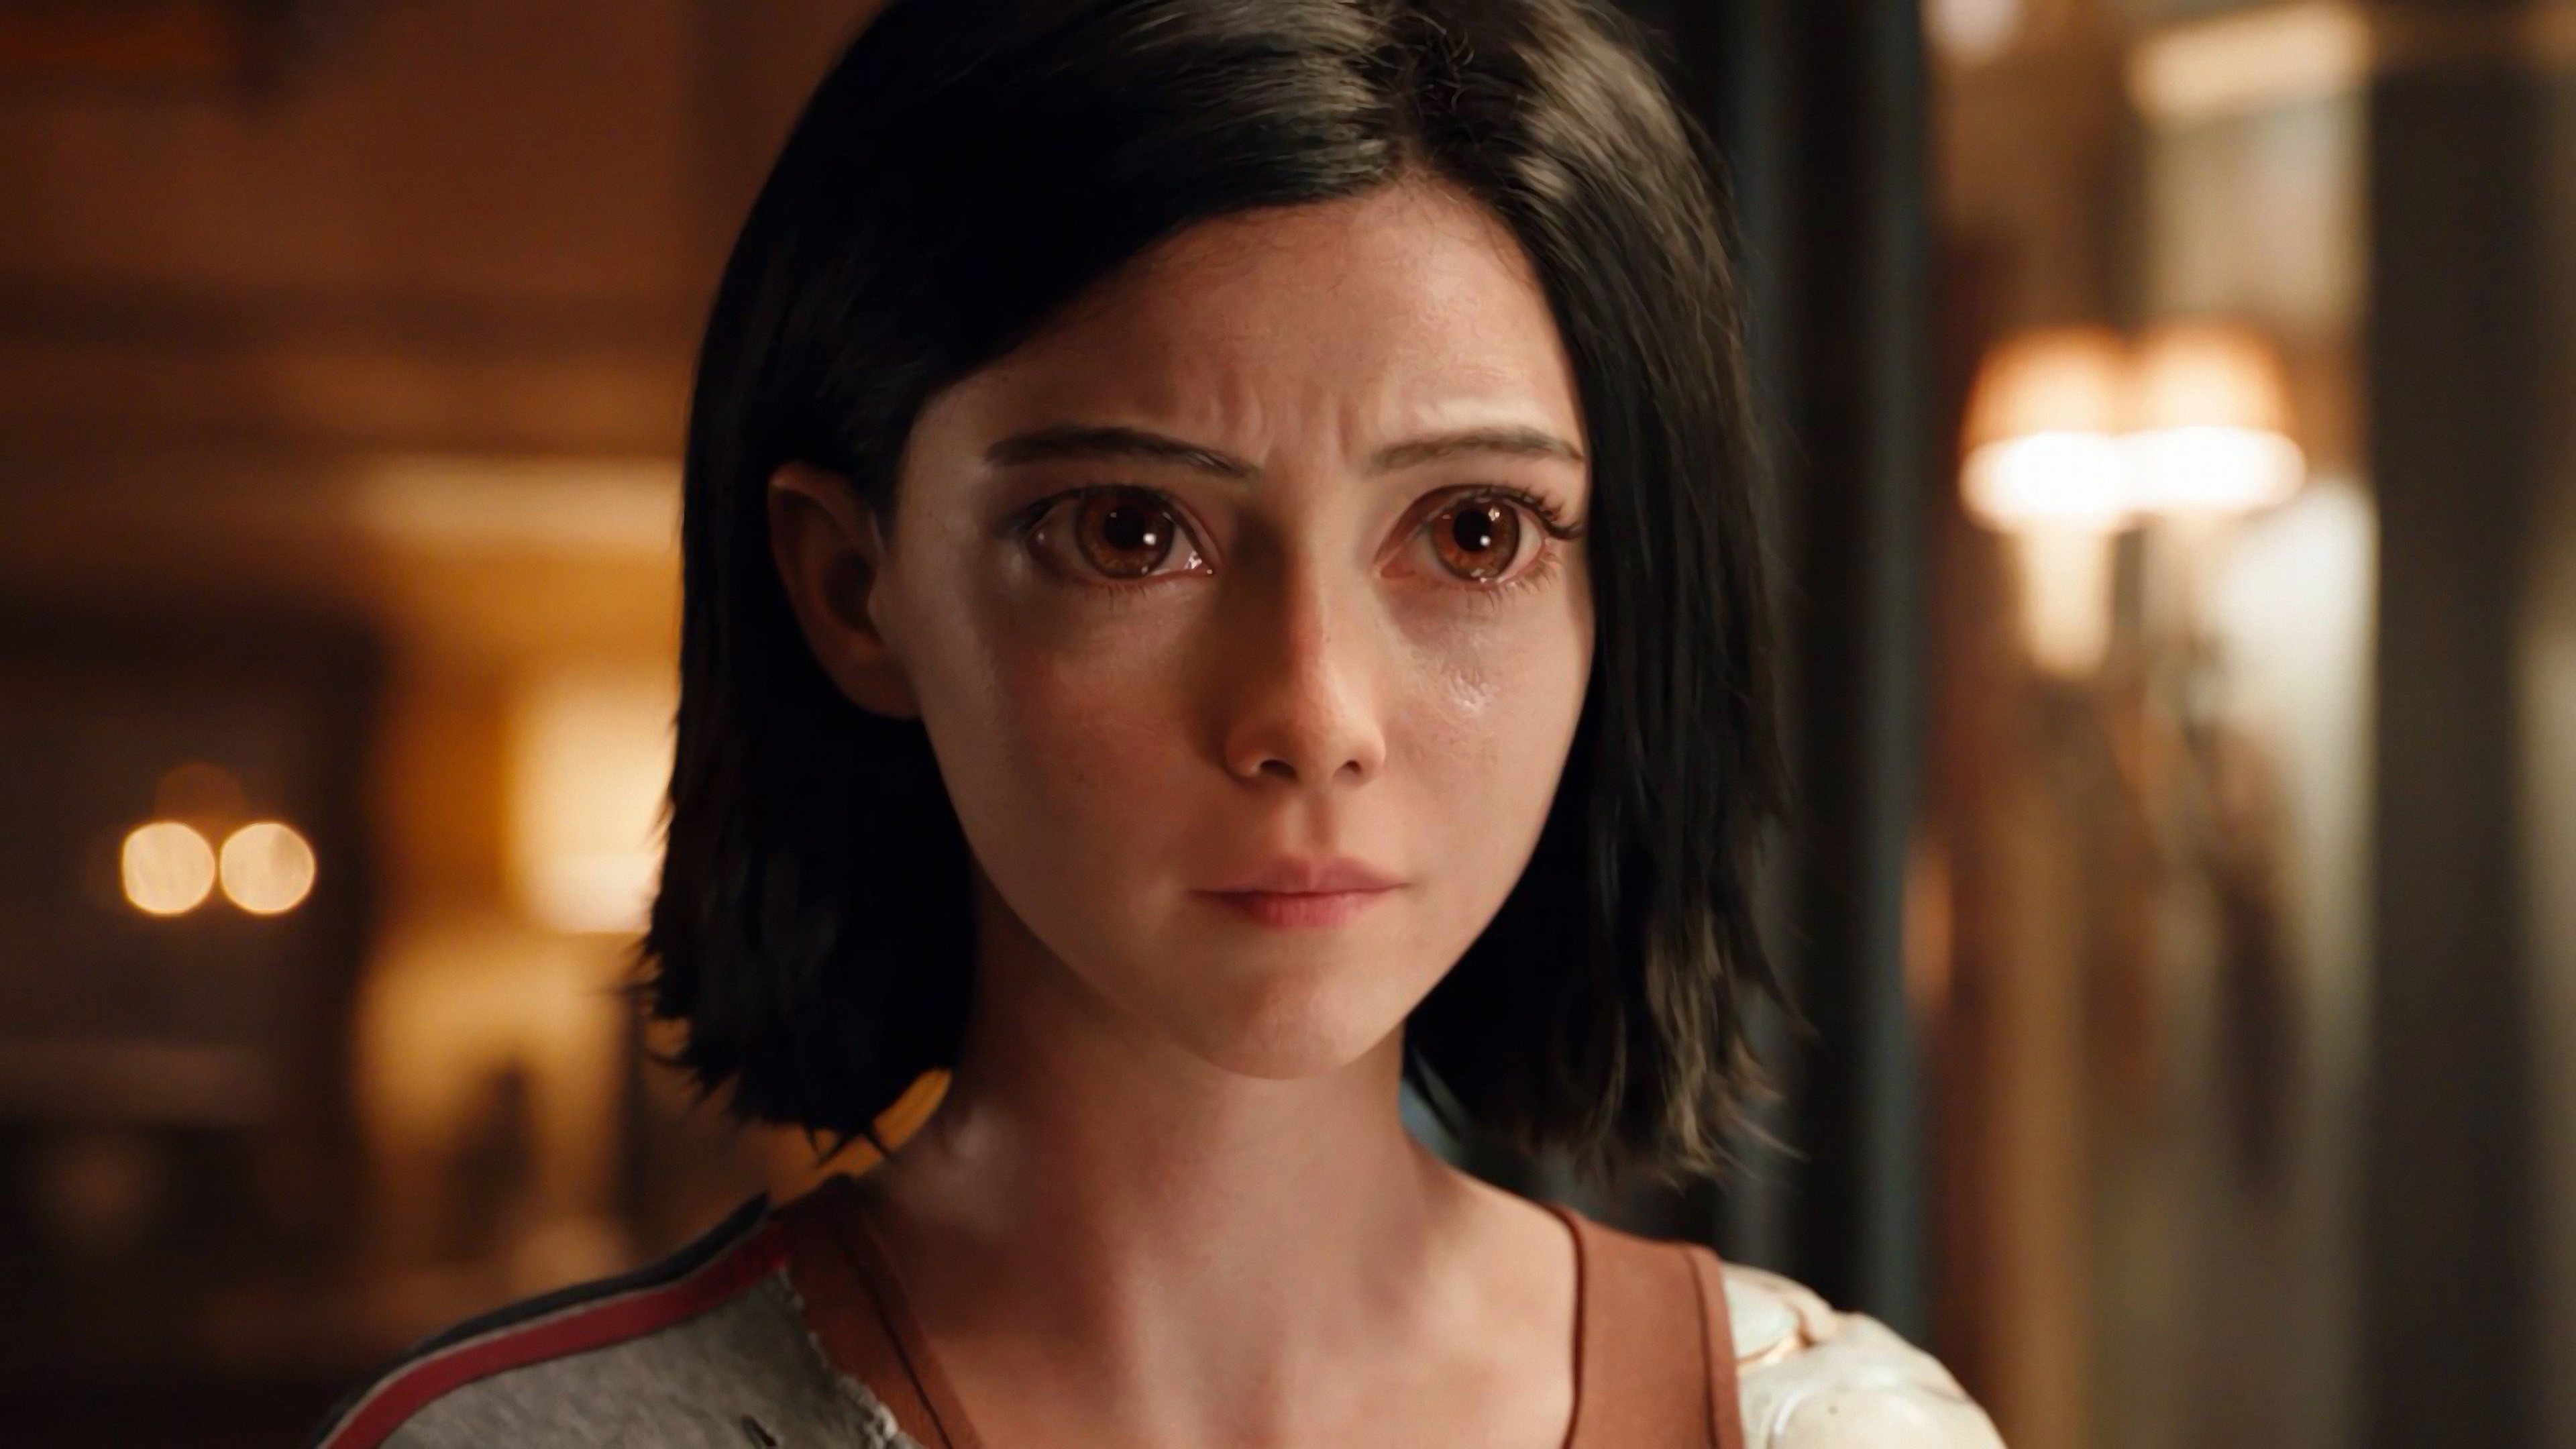 alita battle angel rosa salazar 4k wallpaper 1545590156 - Alita: Battle Angel Rosa Salazar 4K Wallpaper - Alita: Battle Angel (2018)